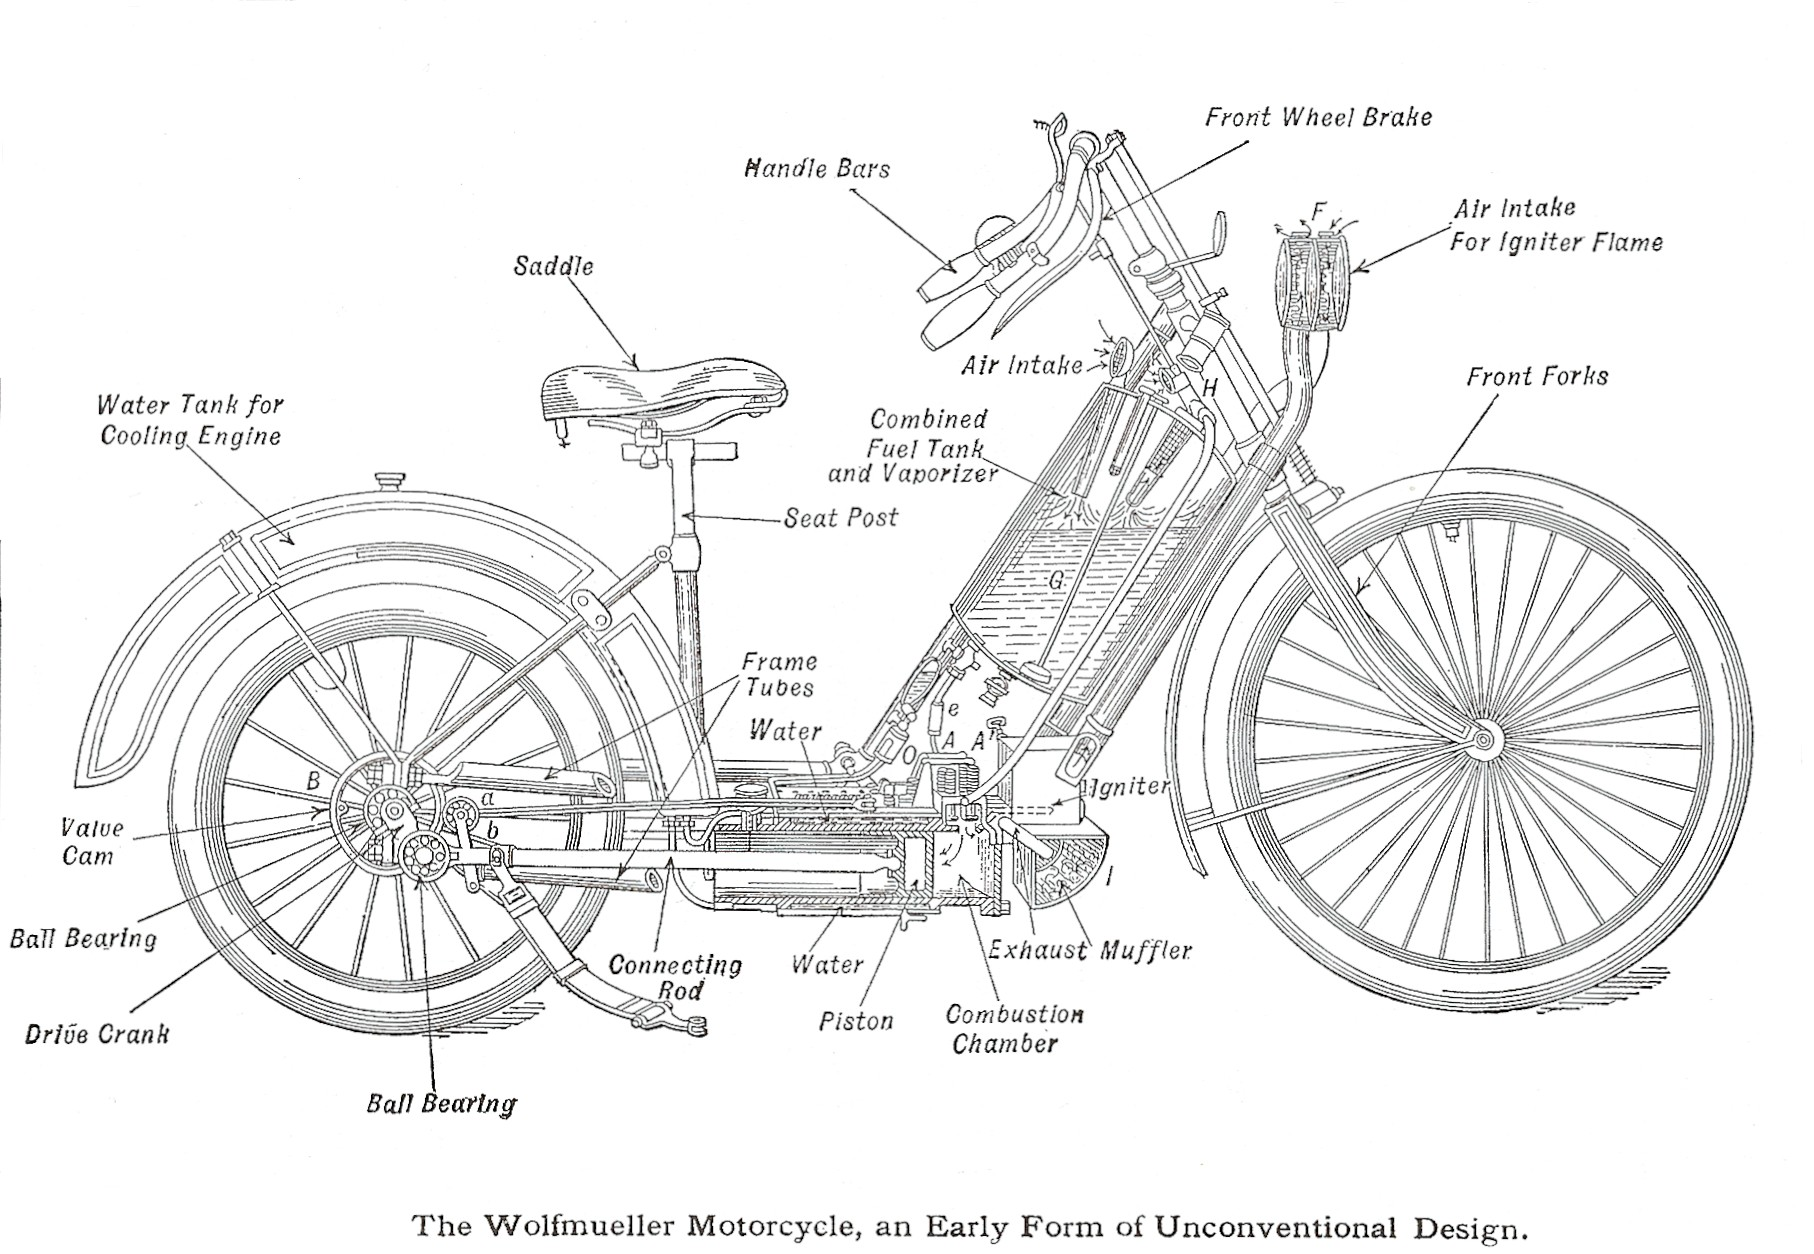 Basic Car Engine Diagram File 1894 Hildebrand & Wolfmüller Diagram Wikimedia Mons Of Basic Car Engine Diagram